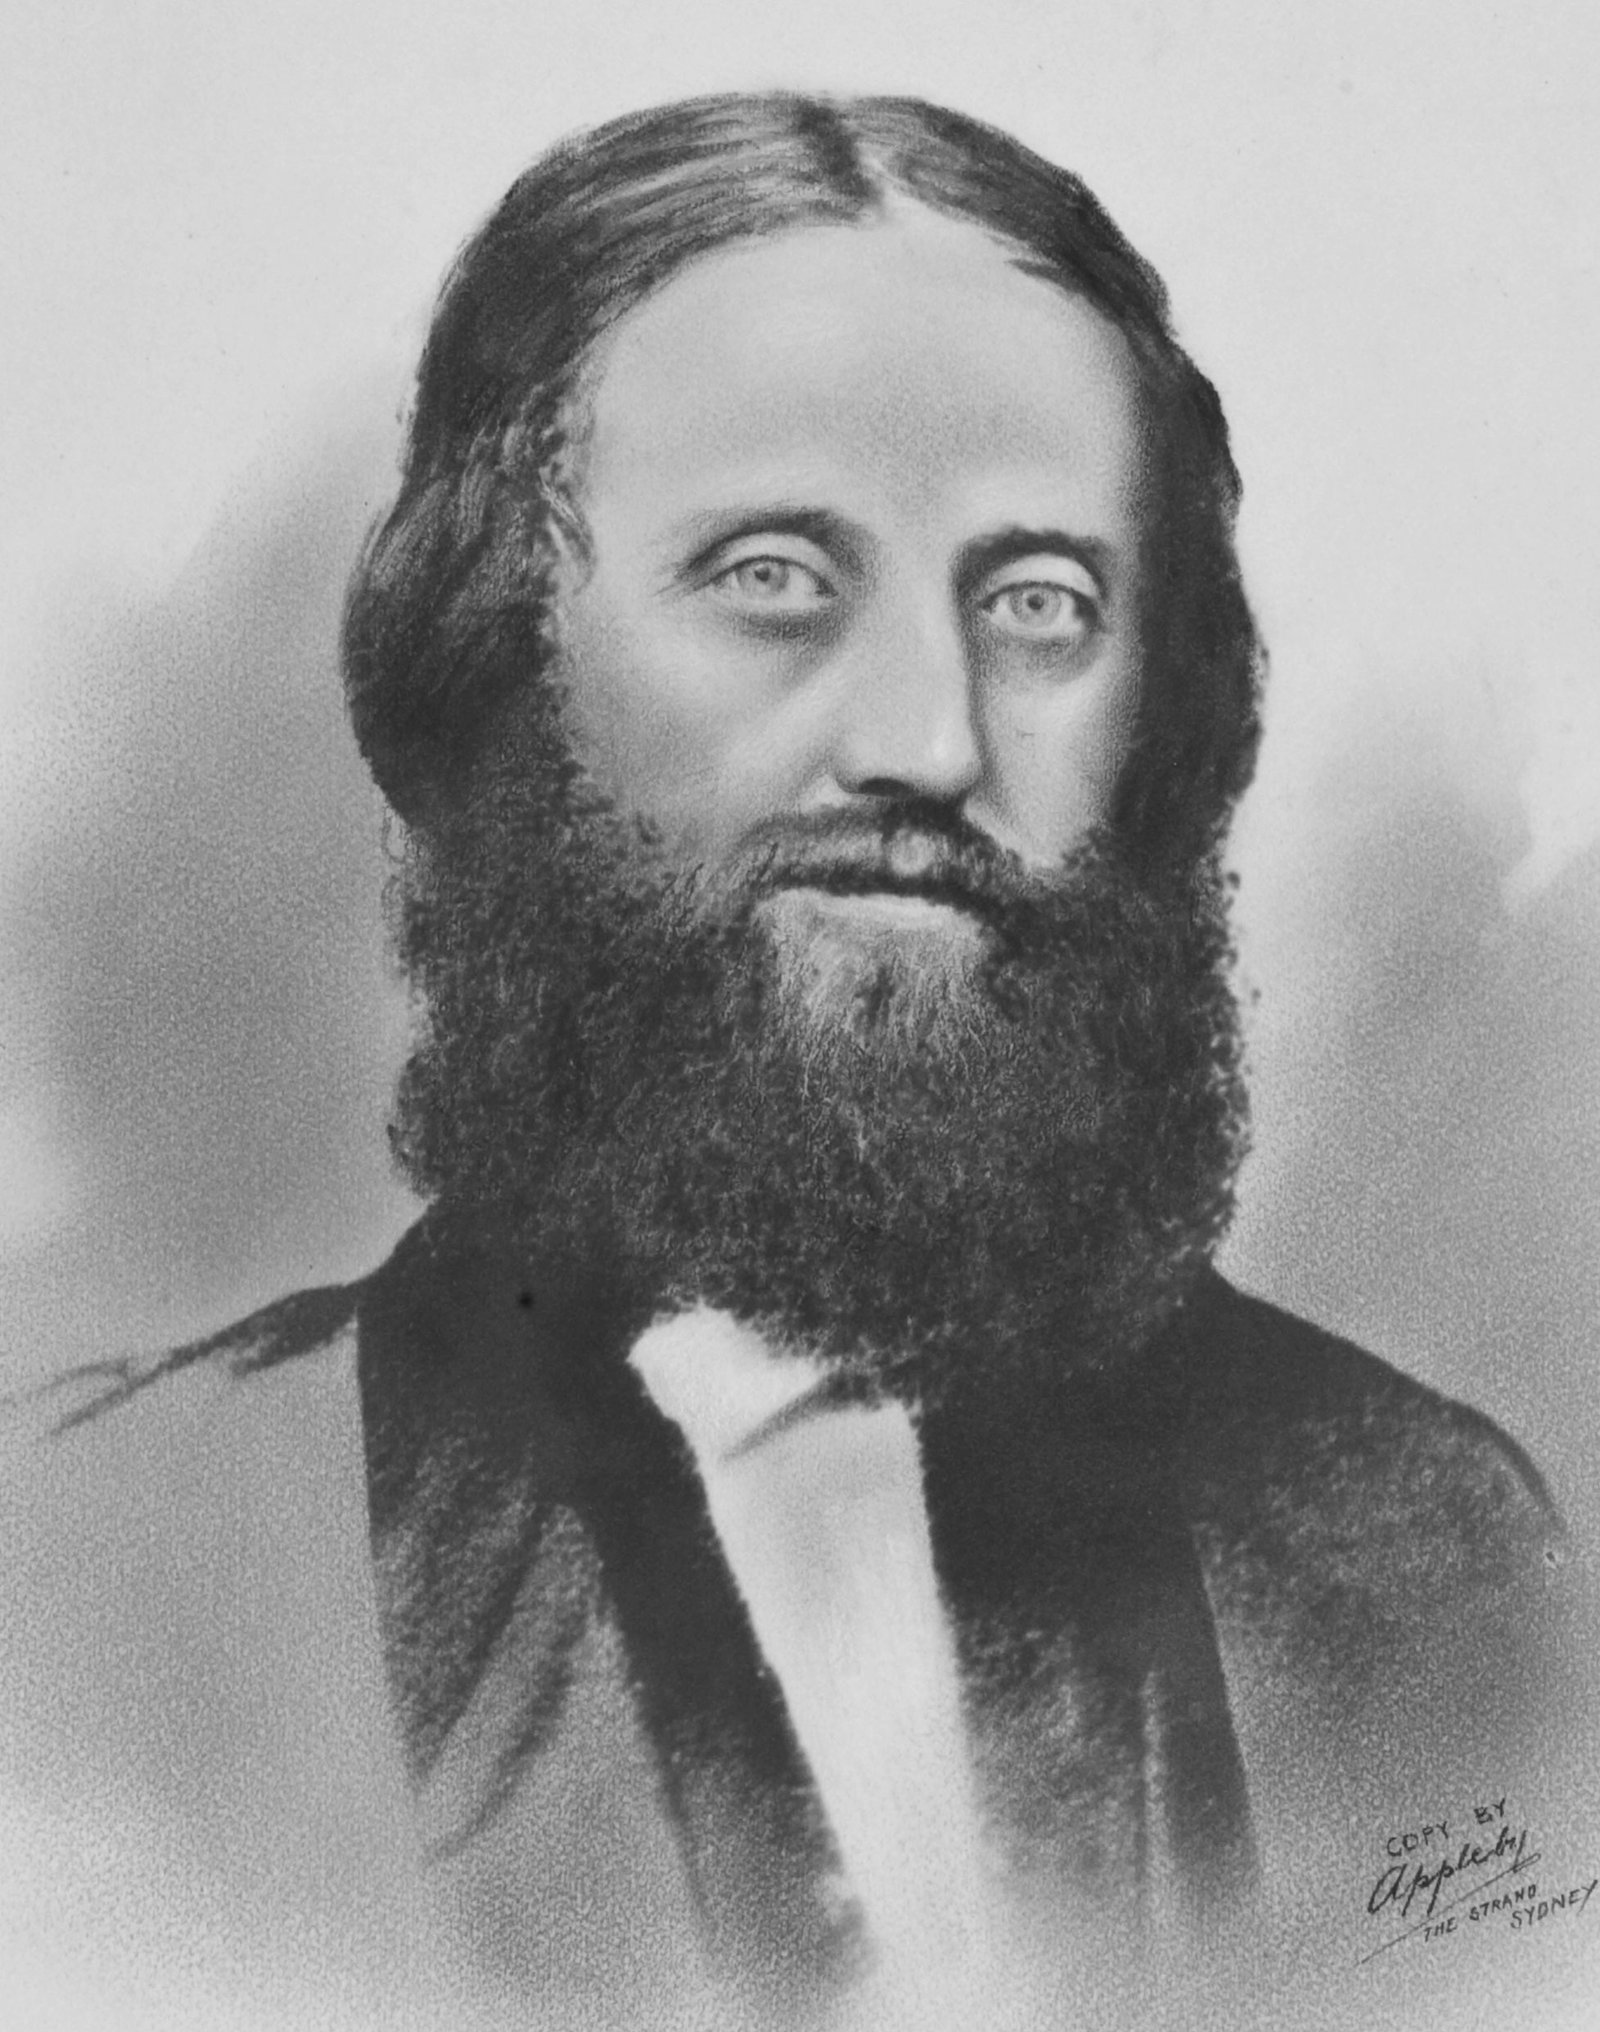 Simon Rood Pittard, Curator and Secretary, 1860-1861